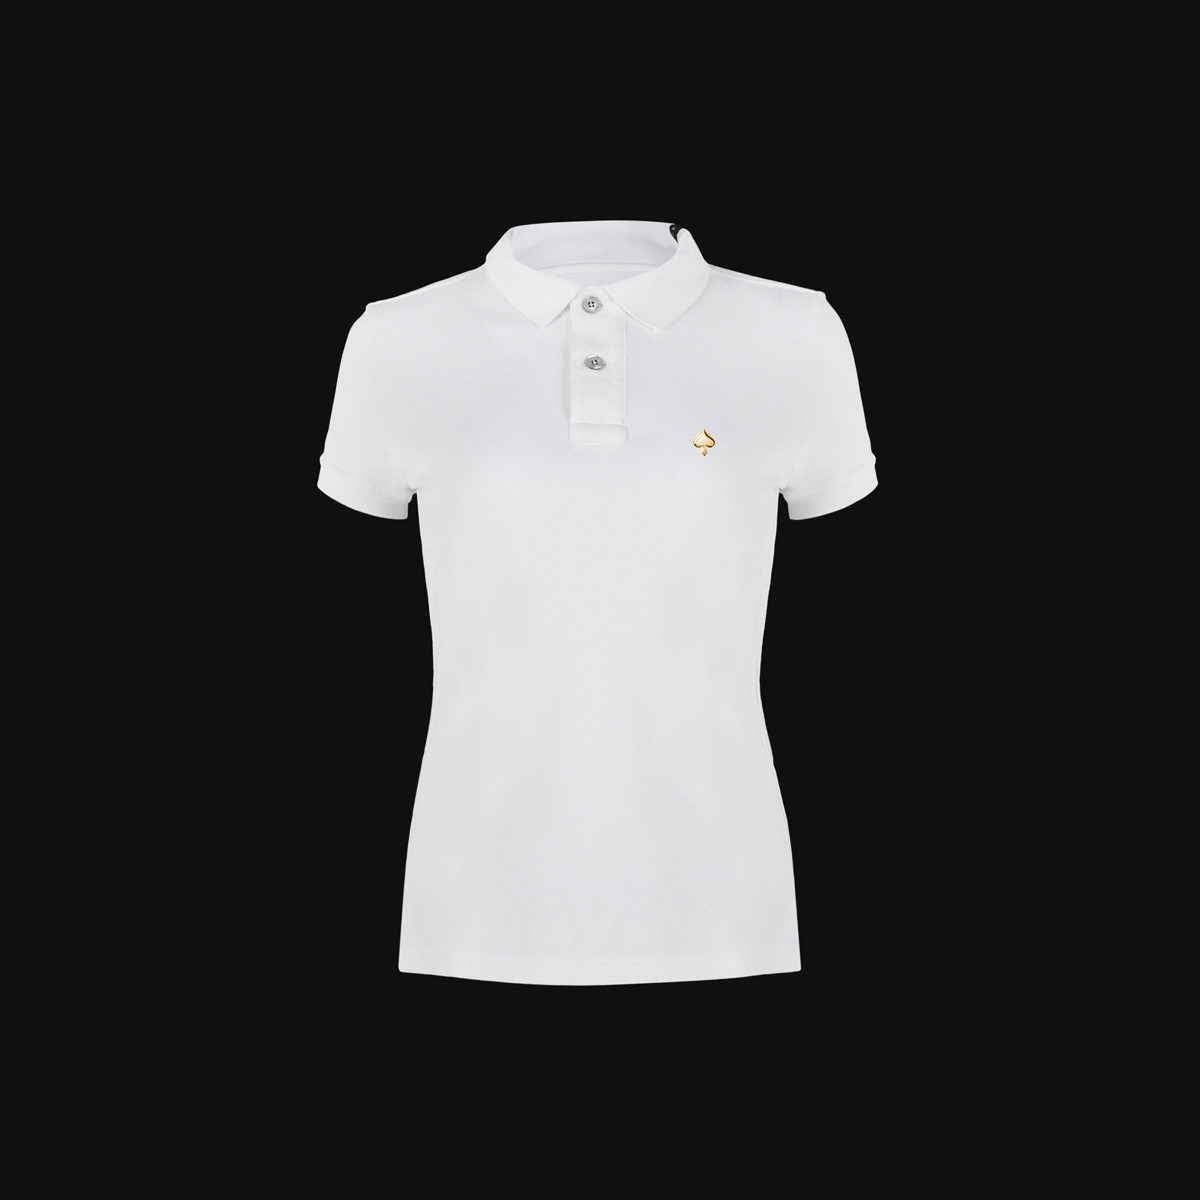 The Exclusive White Ace polo with gold for woman